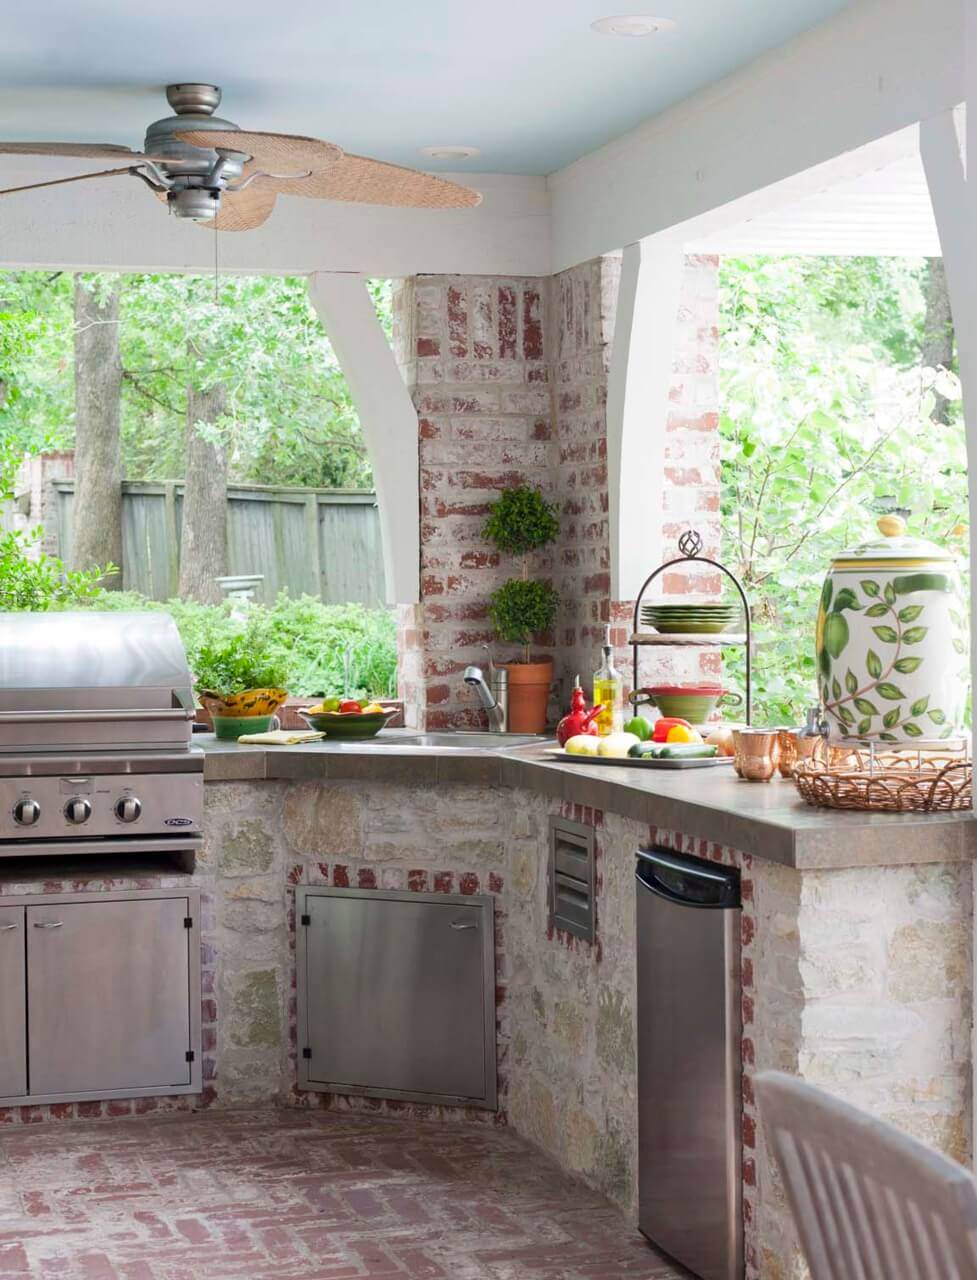 17 Functional and Practical Outdoor Kitchen Design Ideas ... on Patio Kitchen  id=66892